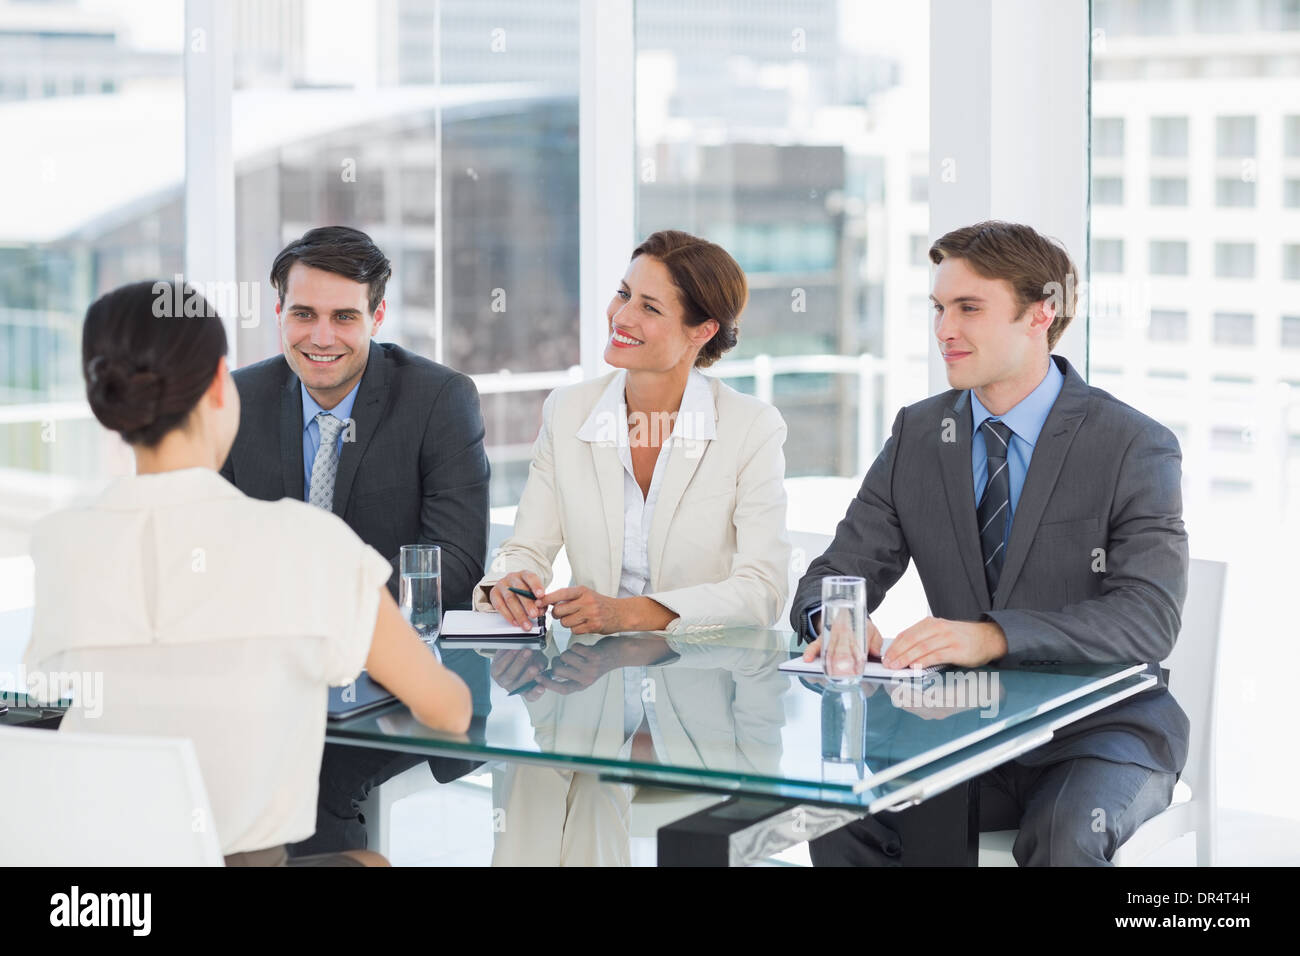 Recruiters checking the candidate during job interview Photo Stock